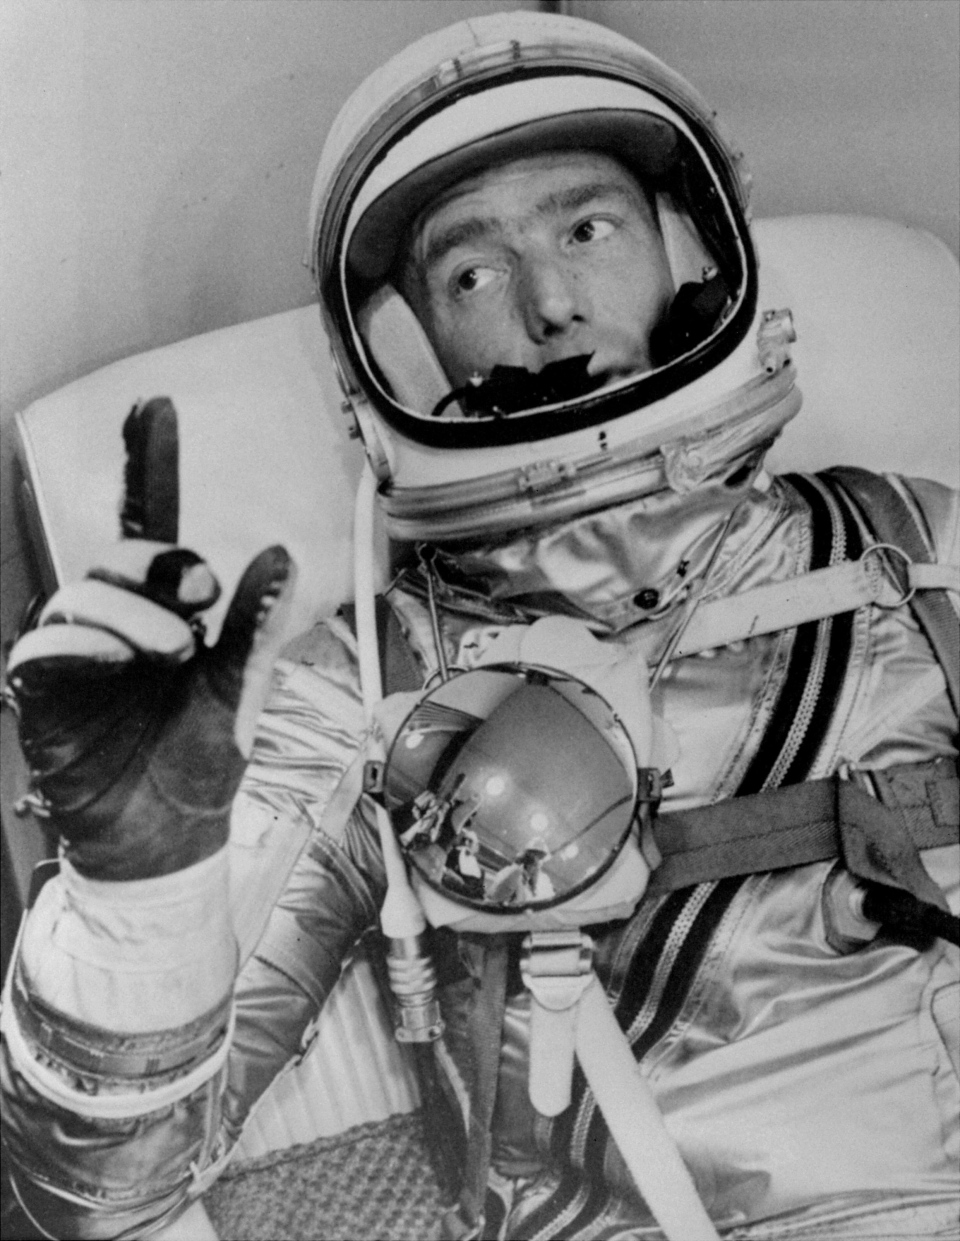 Astronaut Scott Carpenter gestures with one hand after donning his space suit in Hangar S prior to being shot into orbit at Cape Canaveral, Fla., May 24, 1962. (NASA)